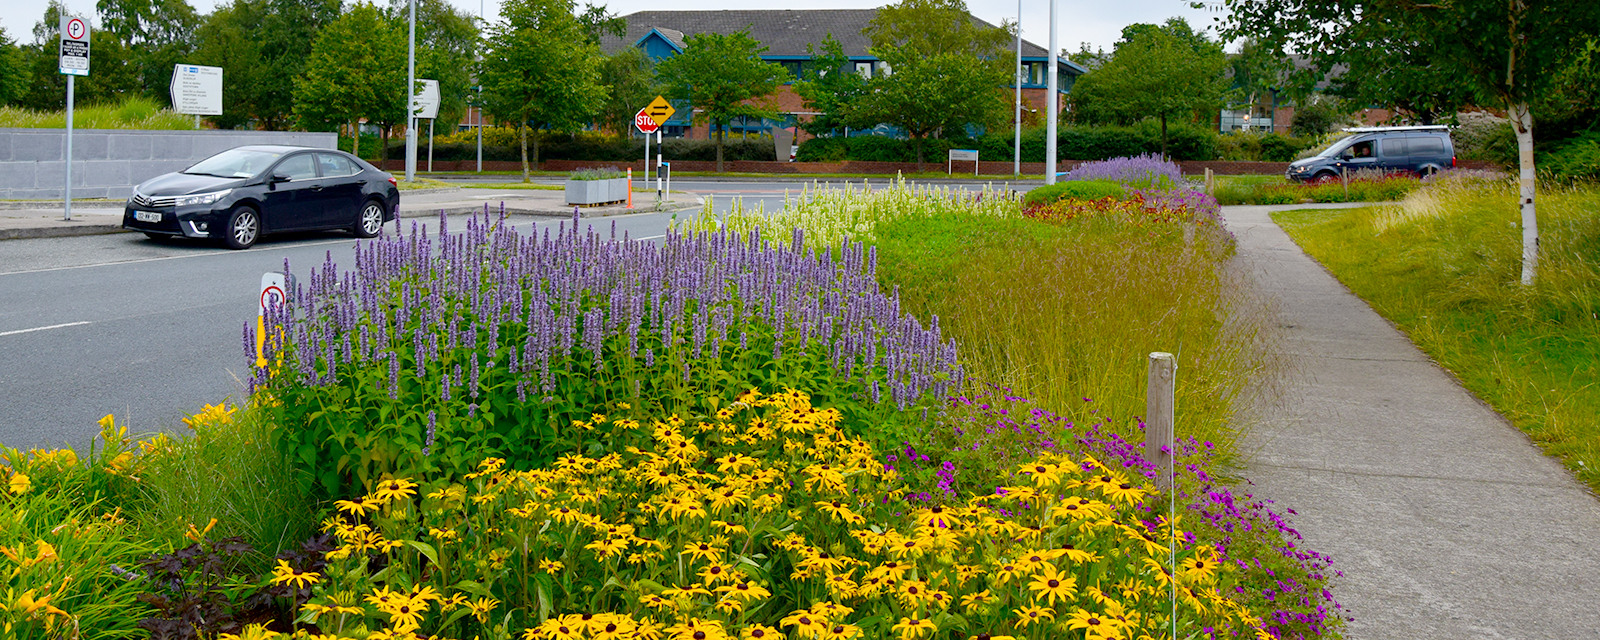 flower-your-place-perennials-public-space-after-2